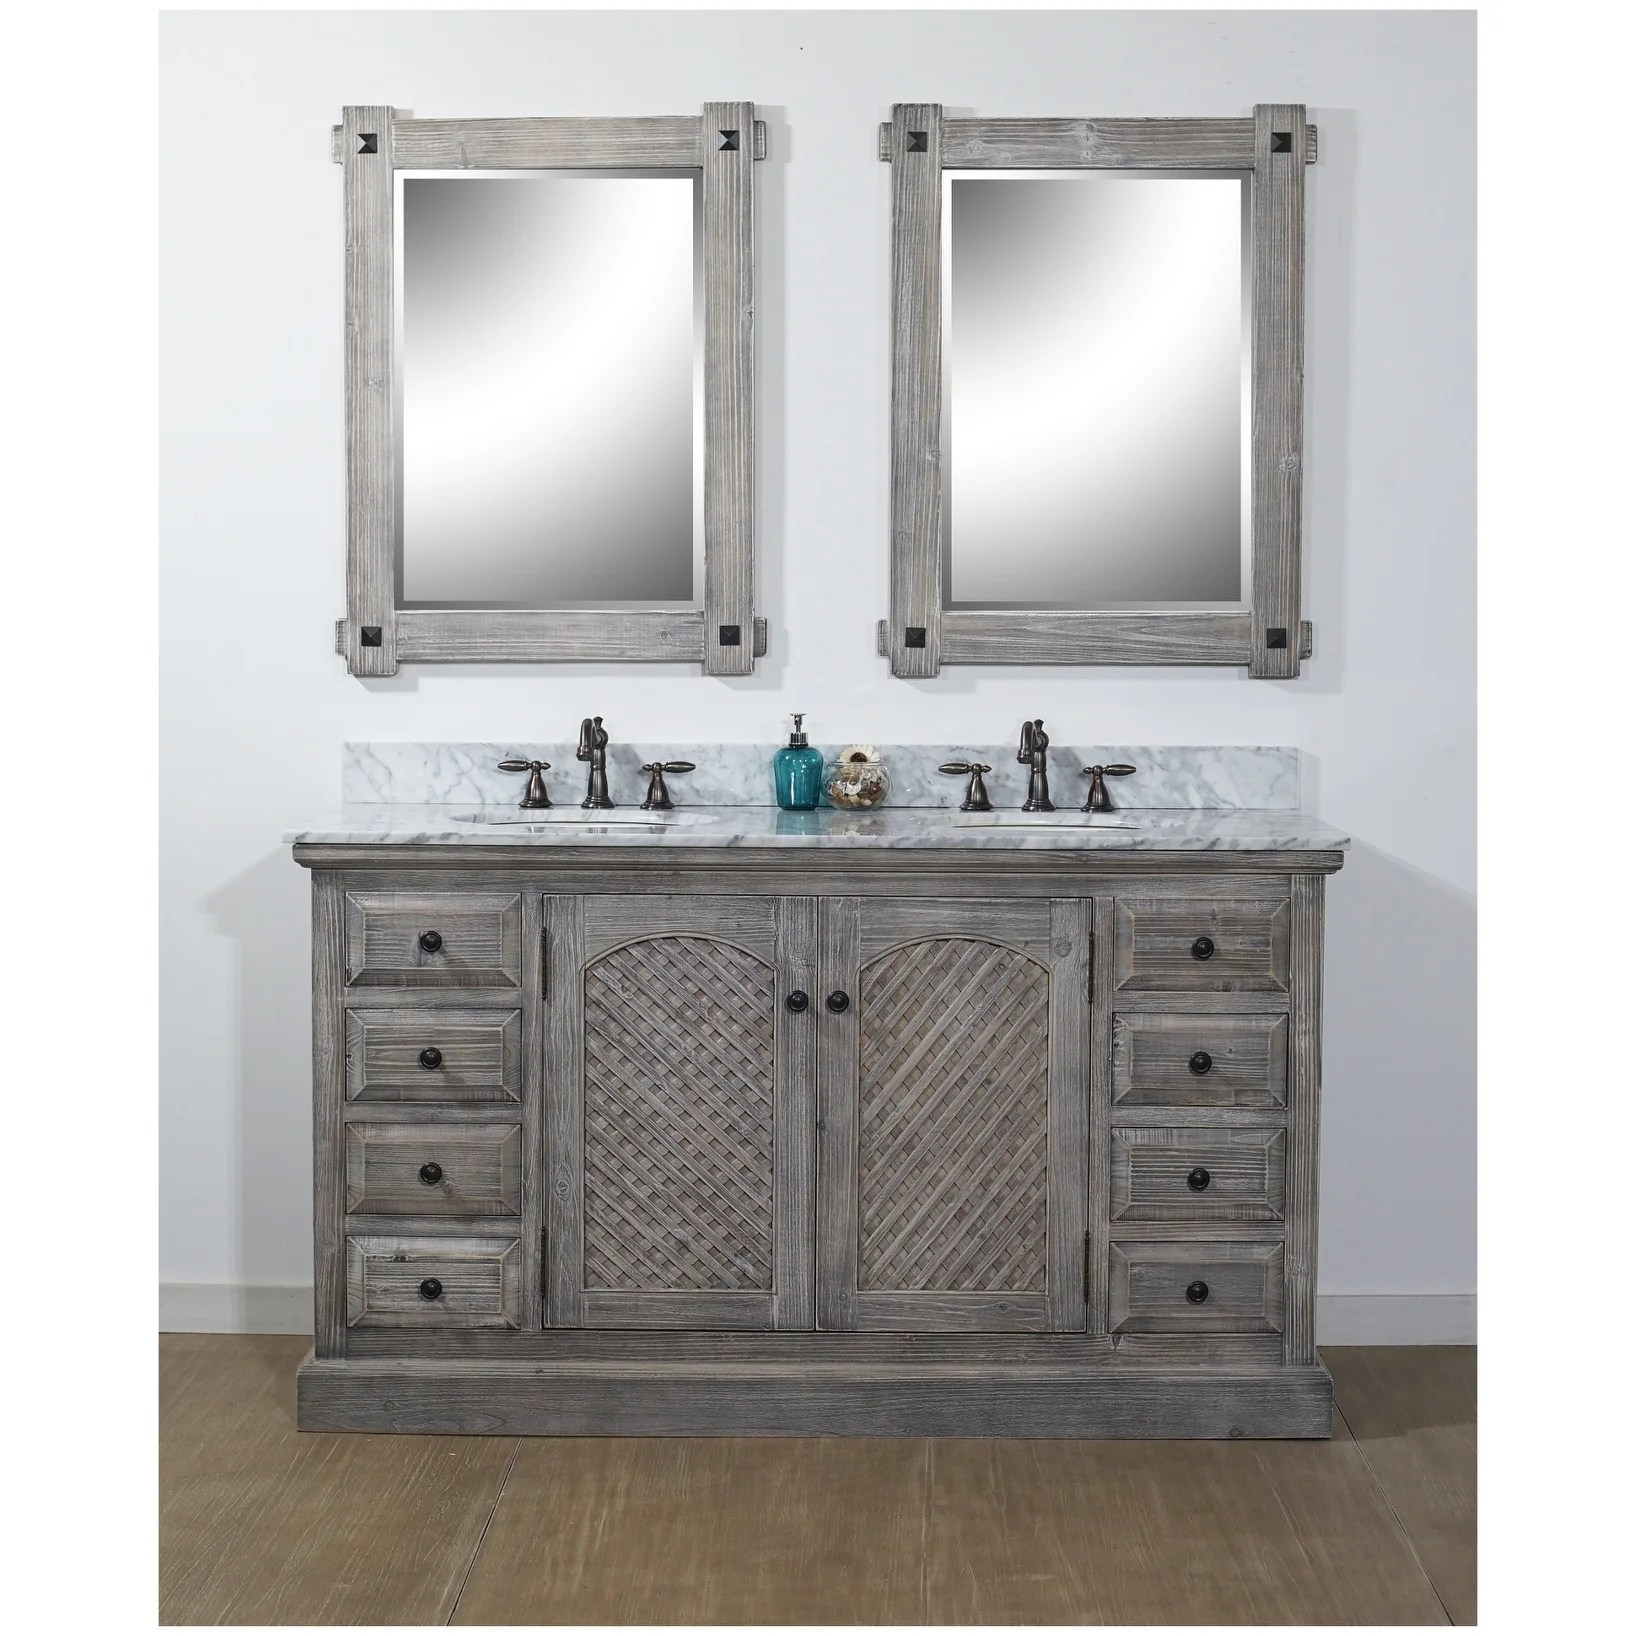 61 rustic solid fir double sink vanity in grey finish with carrara white marble top no faucet